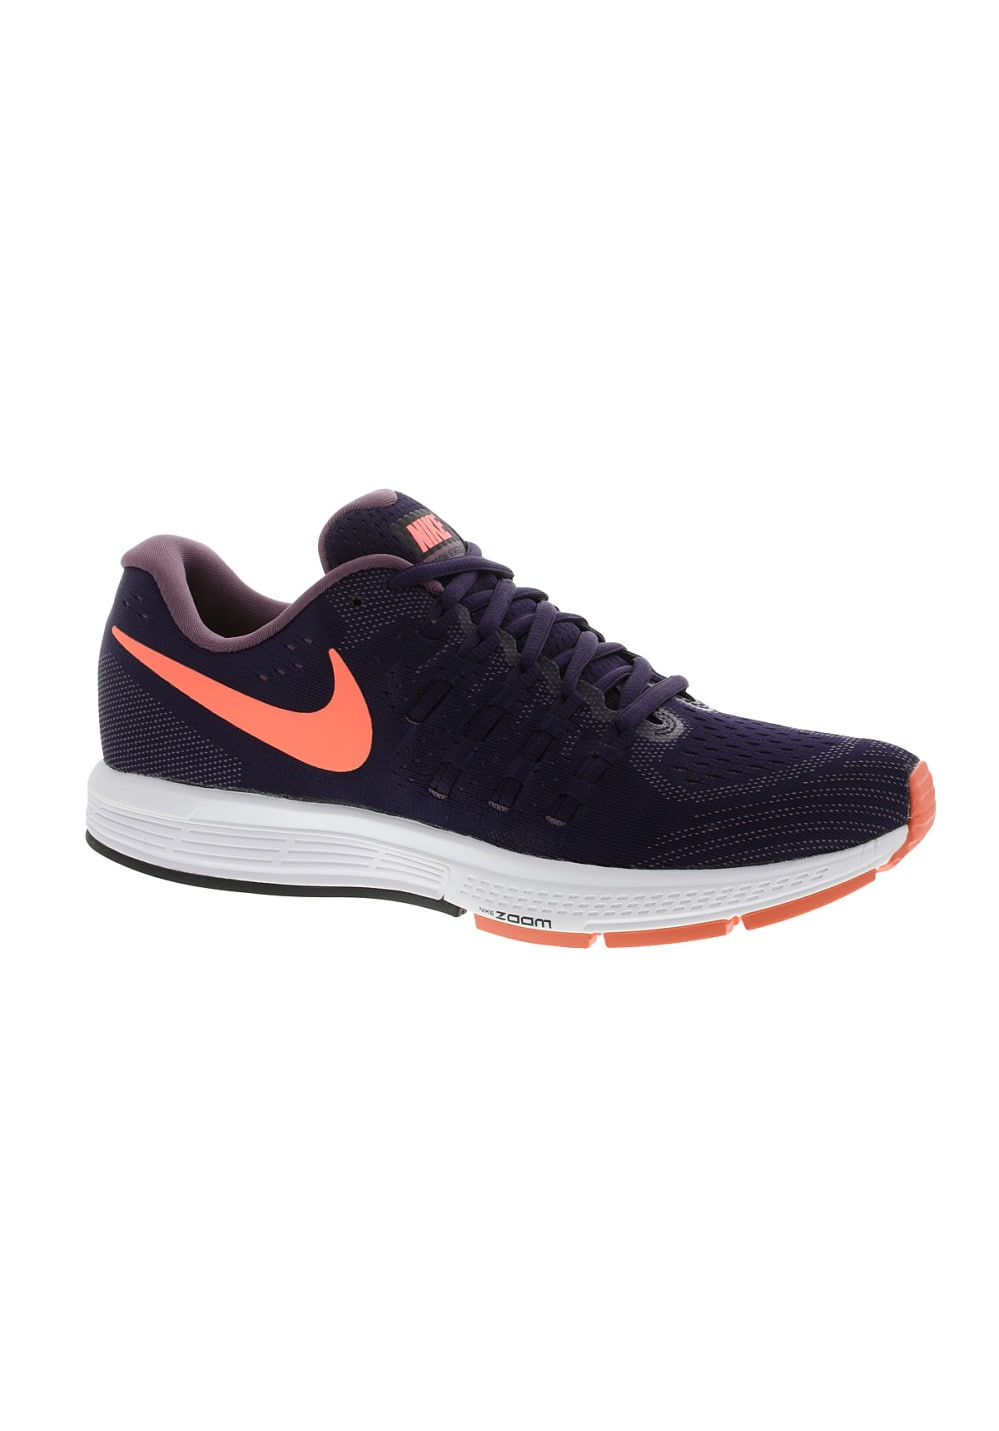 Nike Air Zoom Vomero 11 Running shoes for Women Black